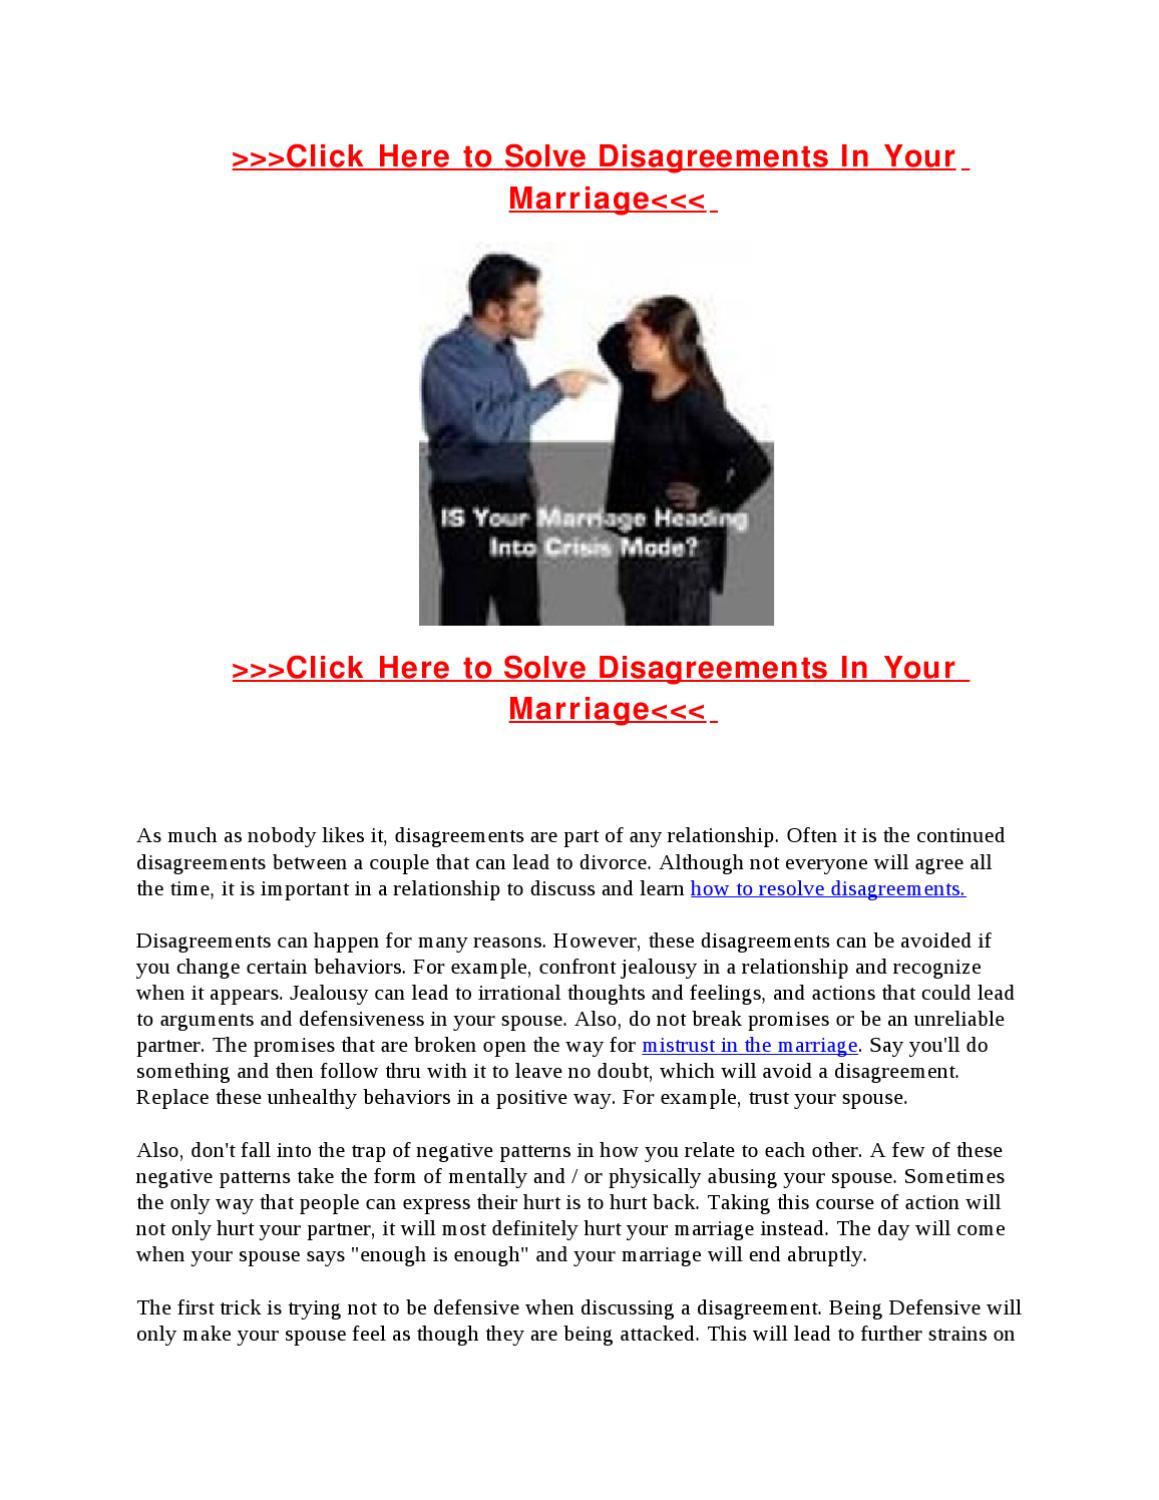 How to Handle Disagreements with Your Spouse About Discipline Style foto